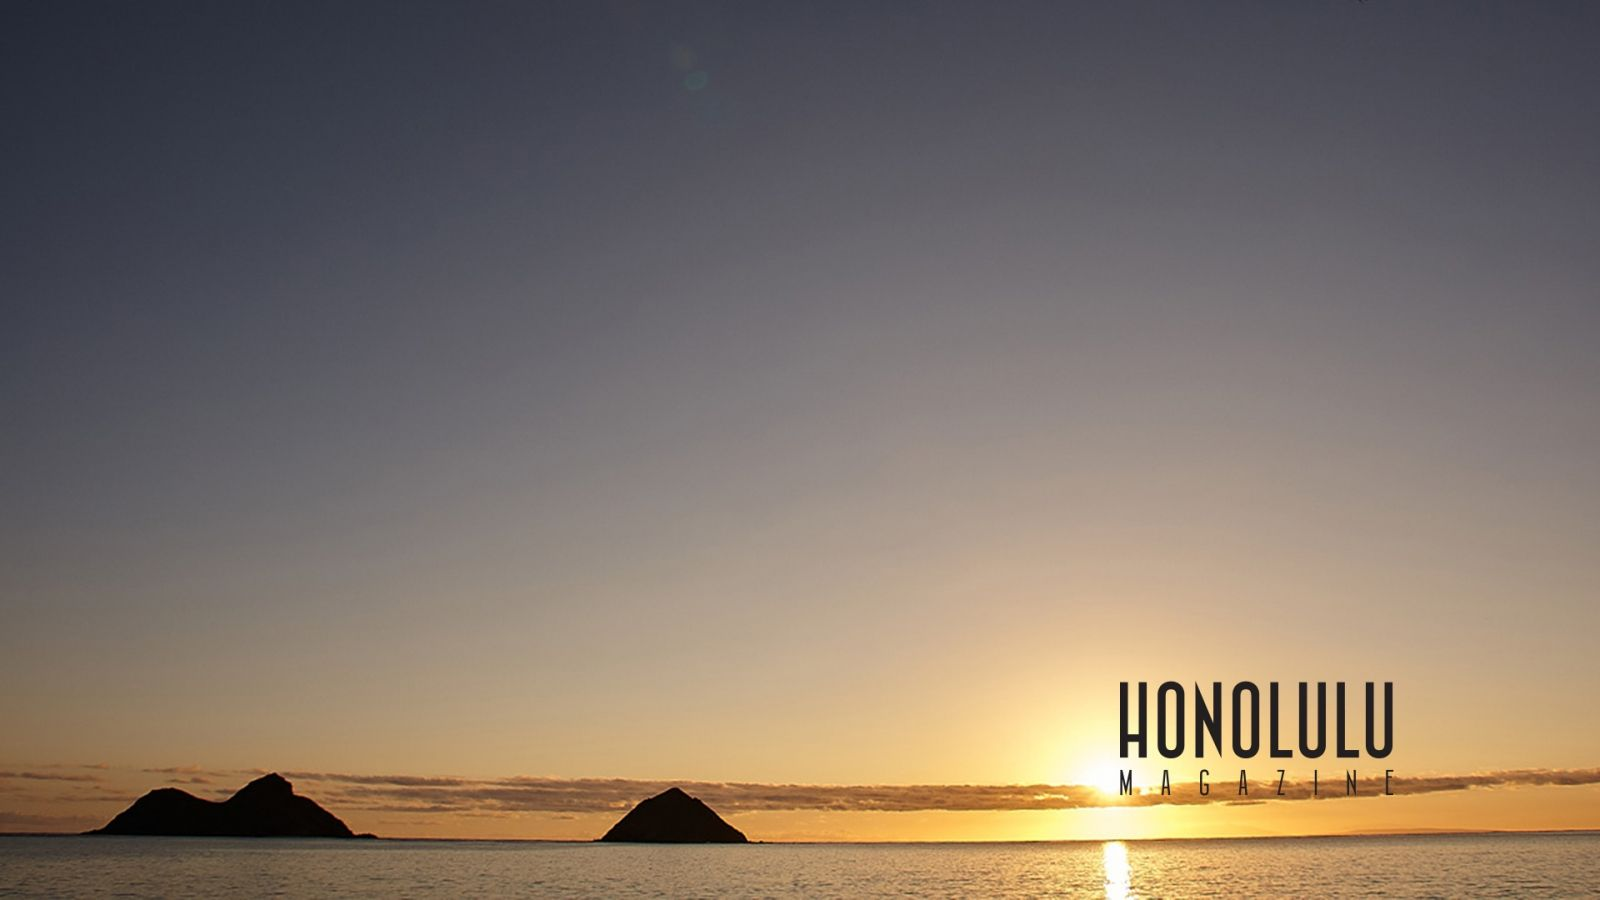 The Best Hawai I Zoom Backgrounds For Your Next Video Calls And Meetings Hawaii Pictures Honolulu Hawai